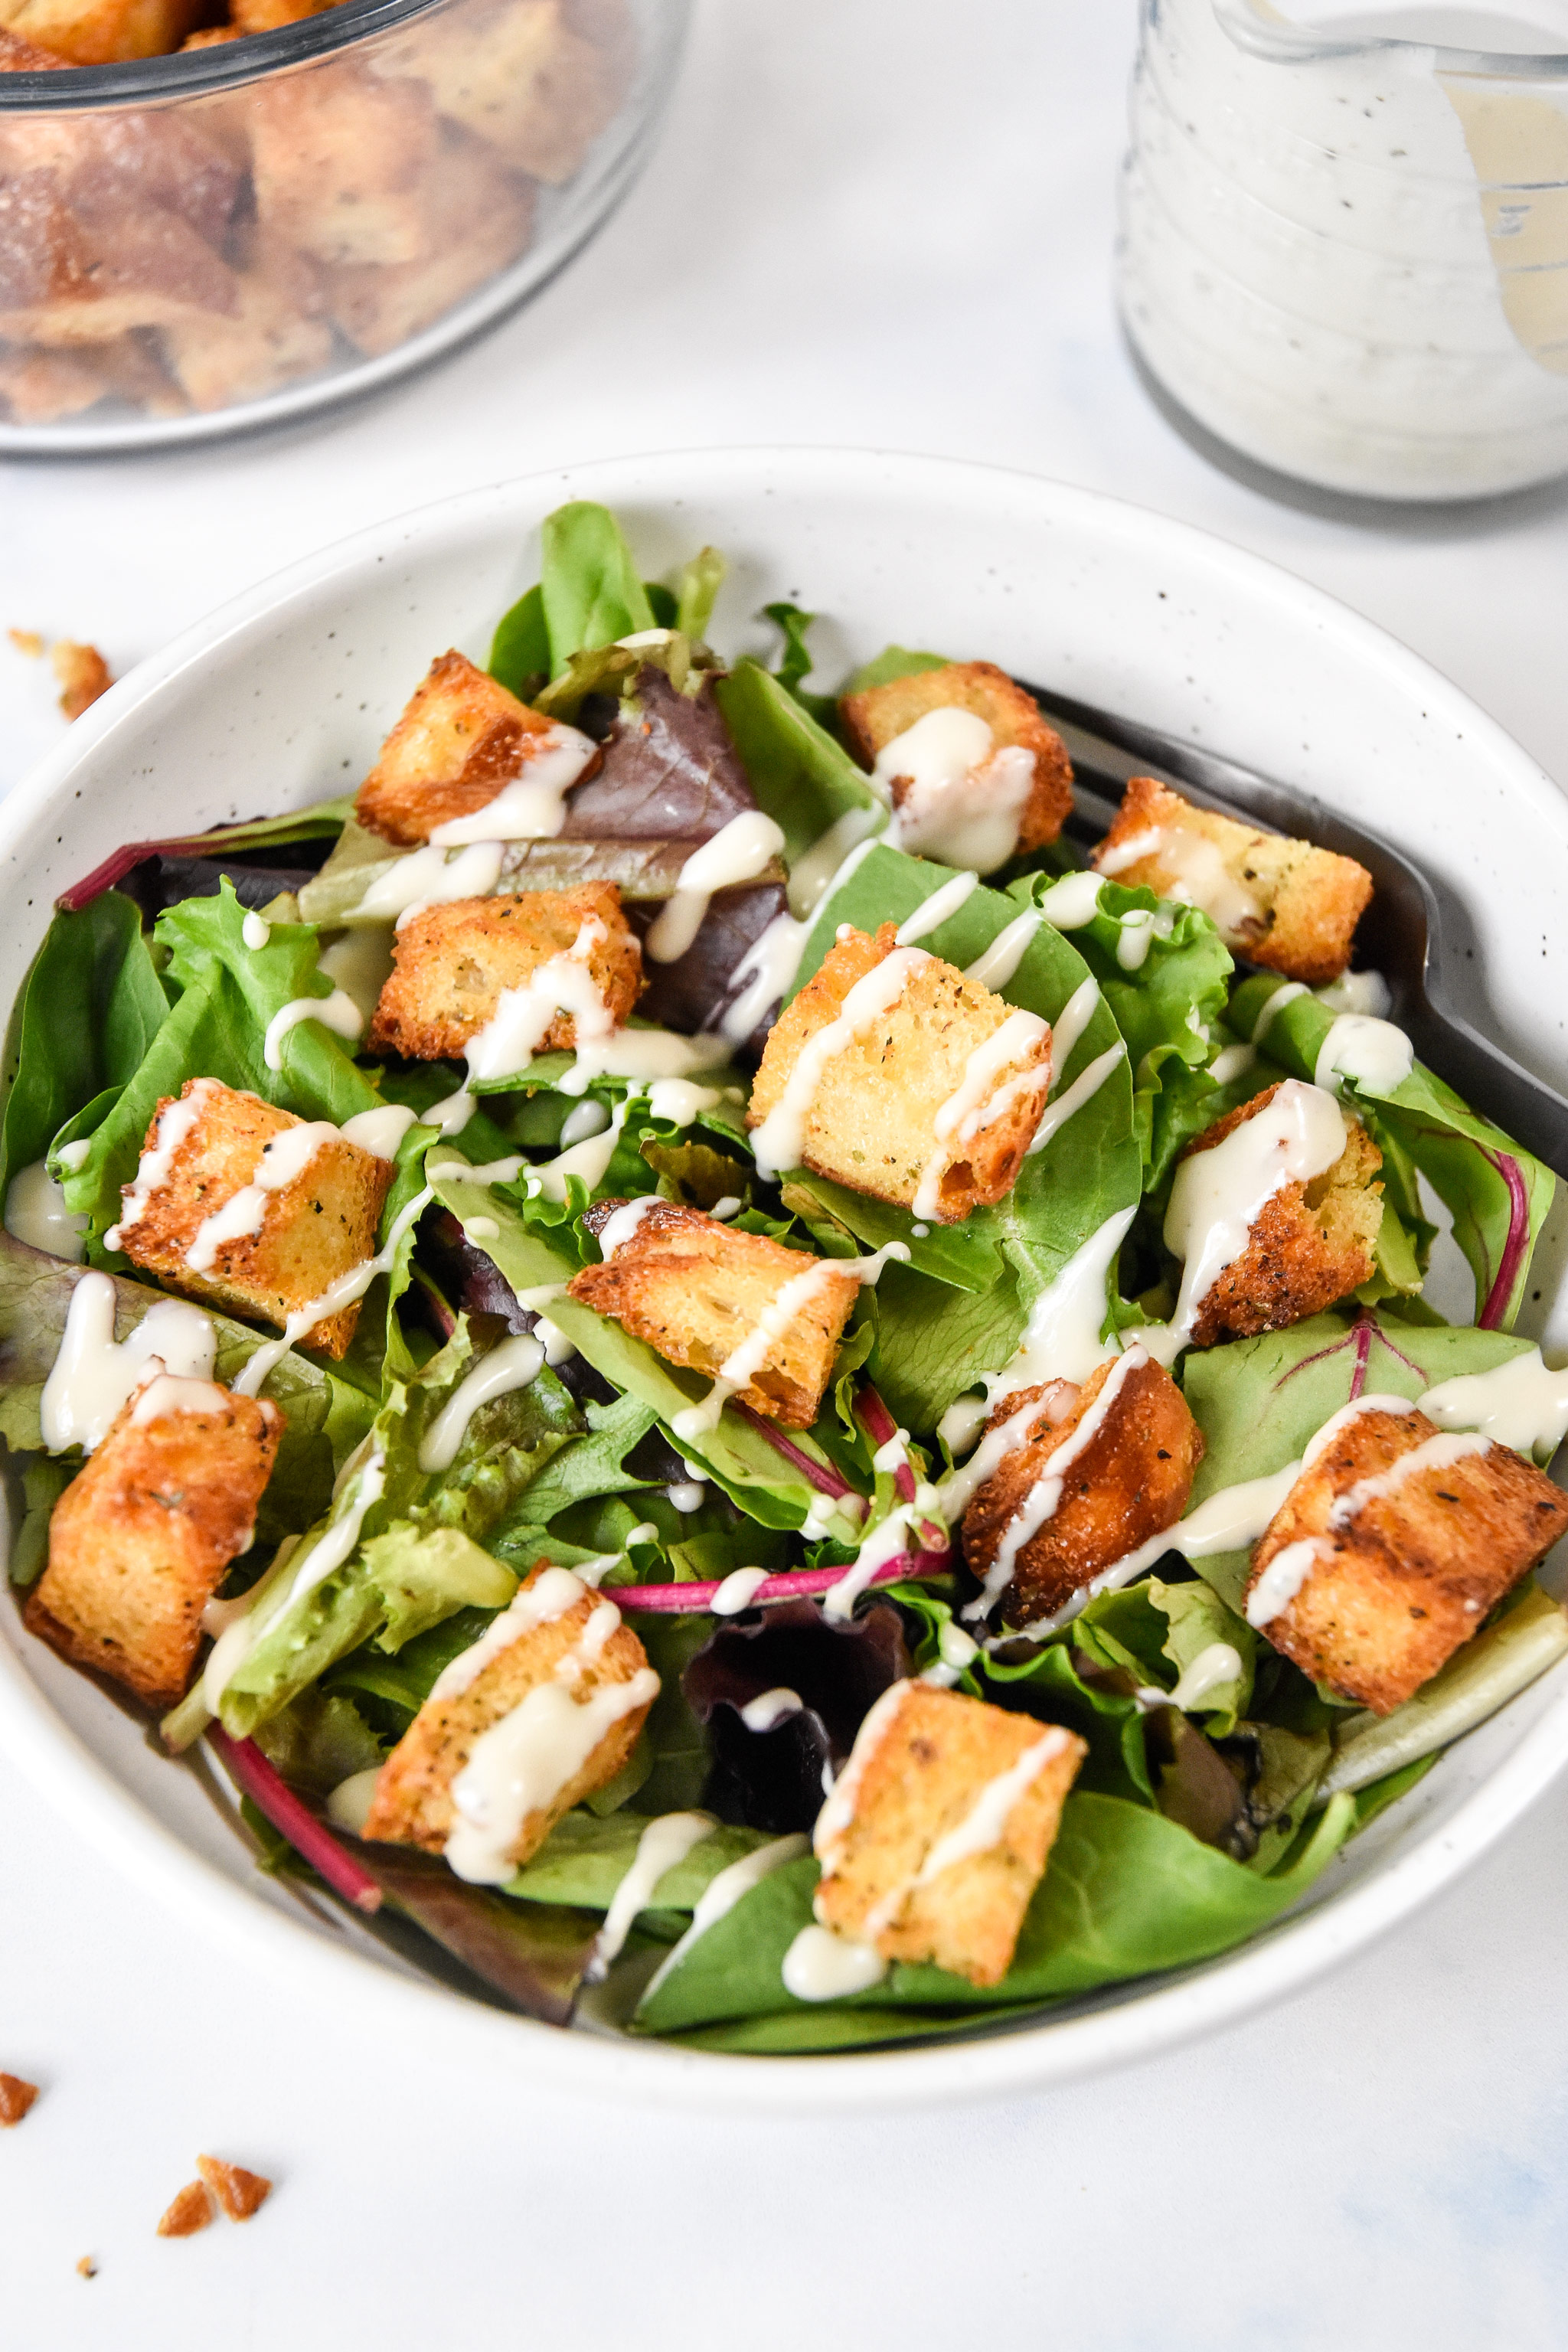 homemade croutons in a salad with ranch drizzle.